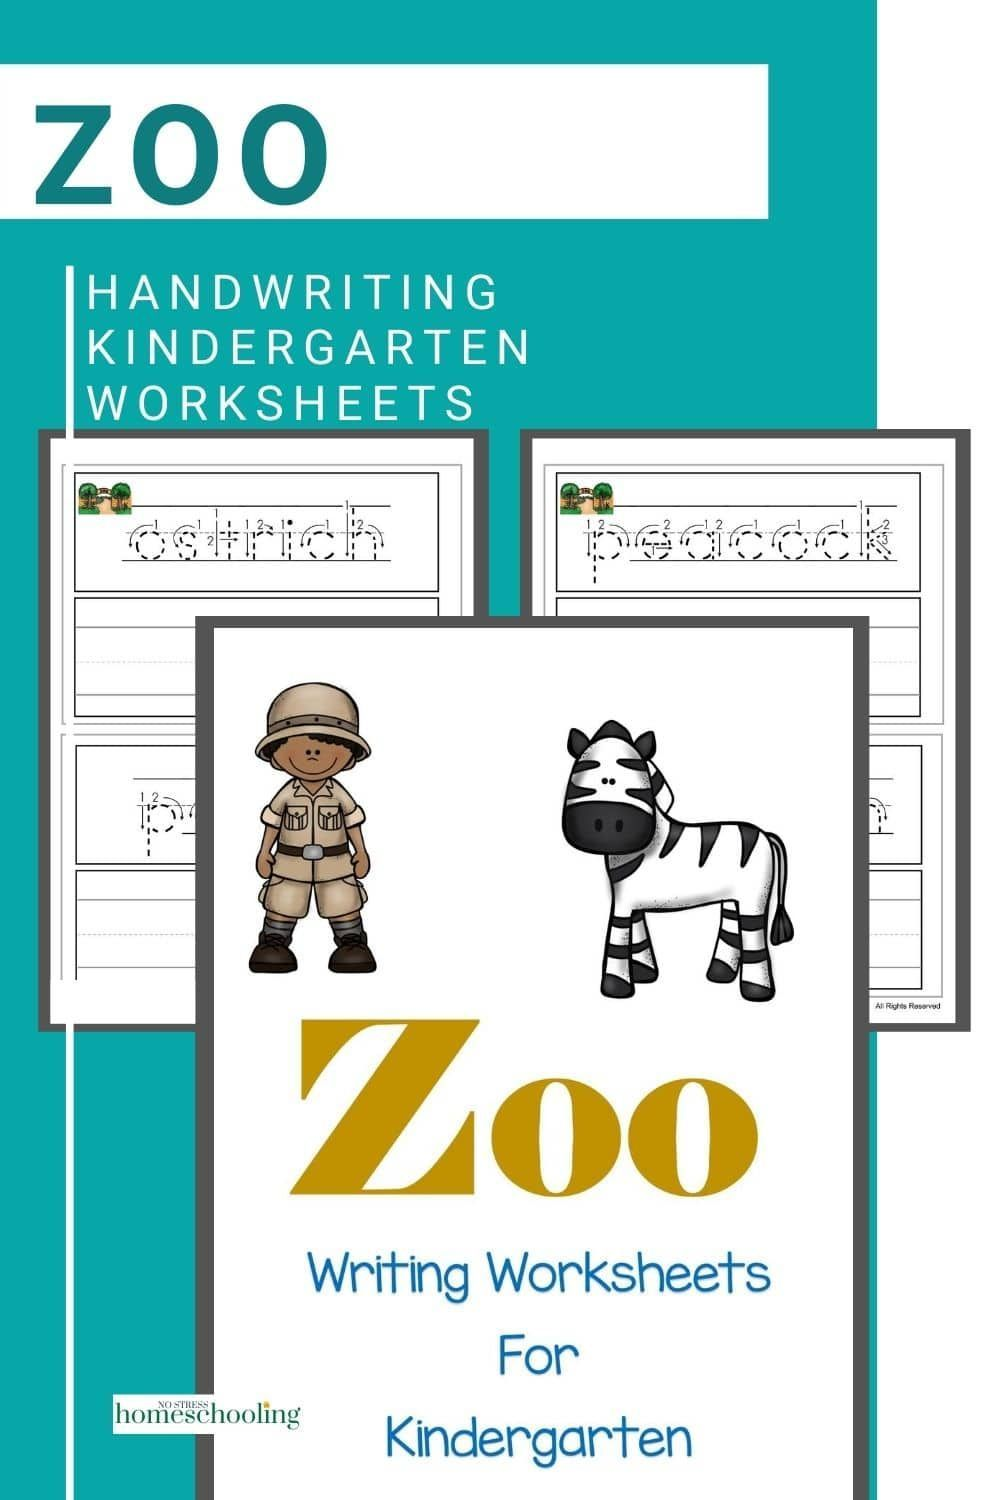 Adorable Zoo Writing Worksheets For Kindergarten To Use Now Free Printable Math Worksheets Kindergarten Reading Worksheets Handwriting Worksheets For Kids [ 1500 x 1000 Pixel ]